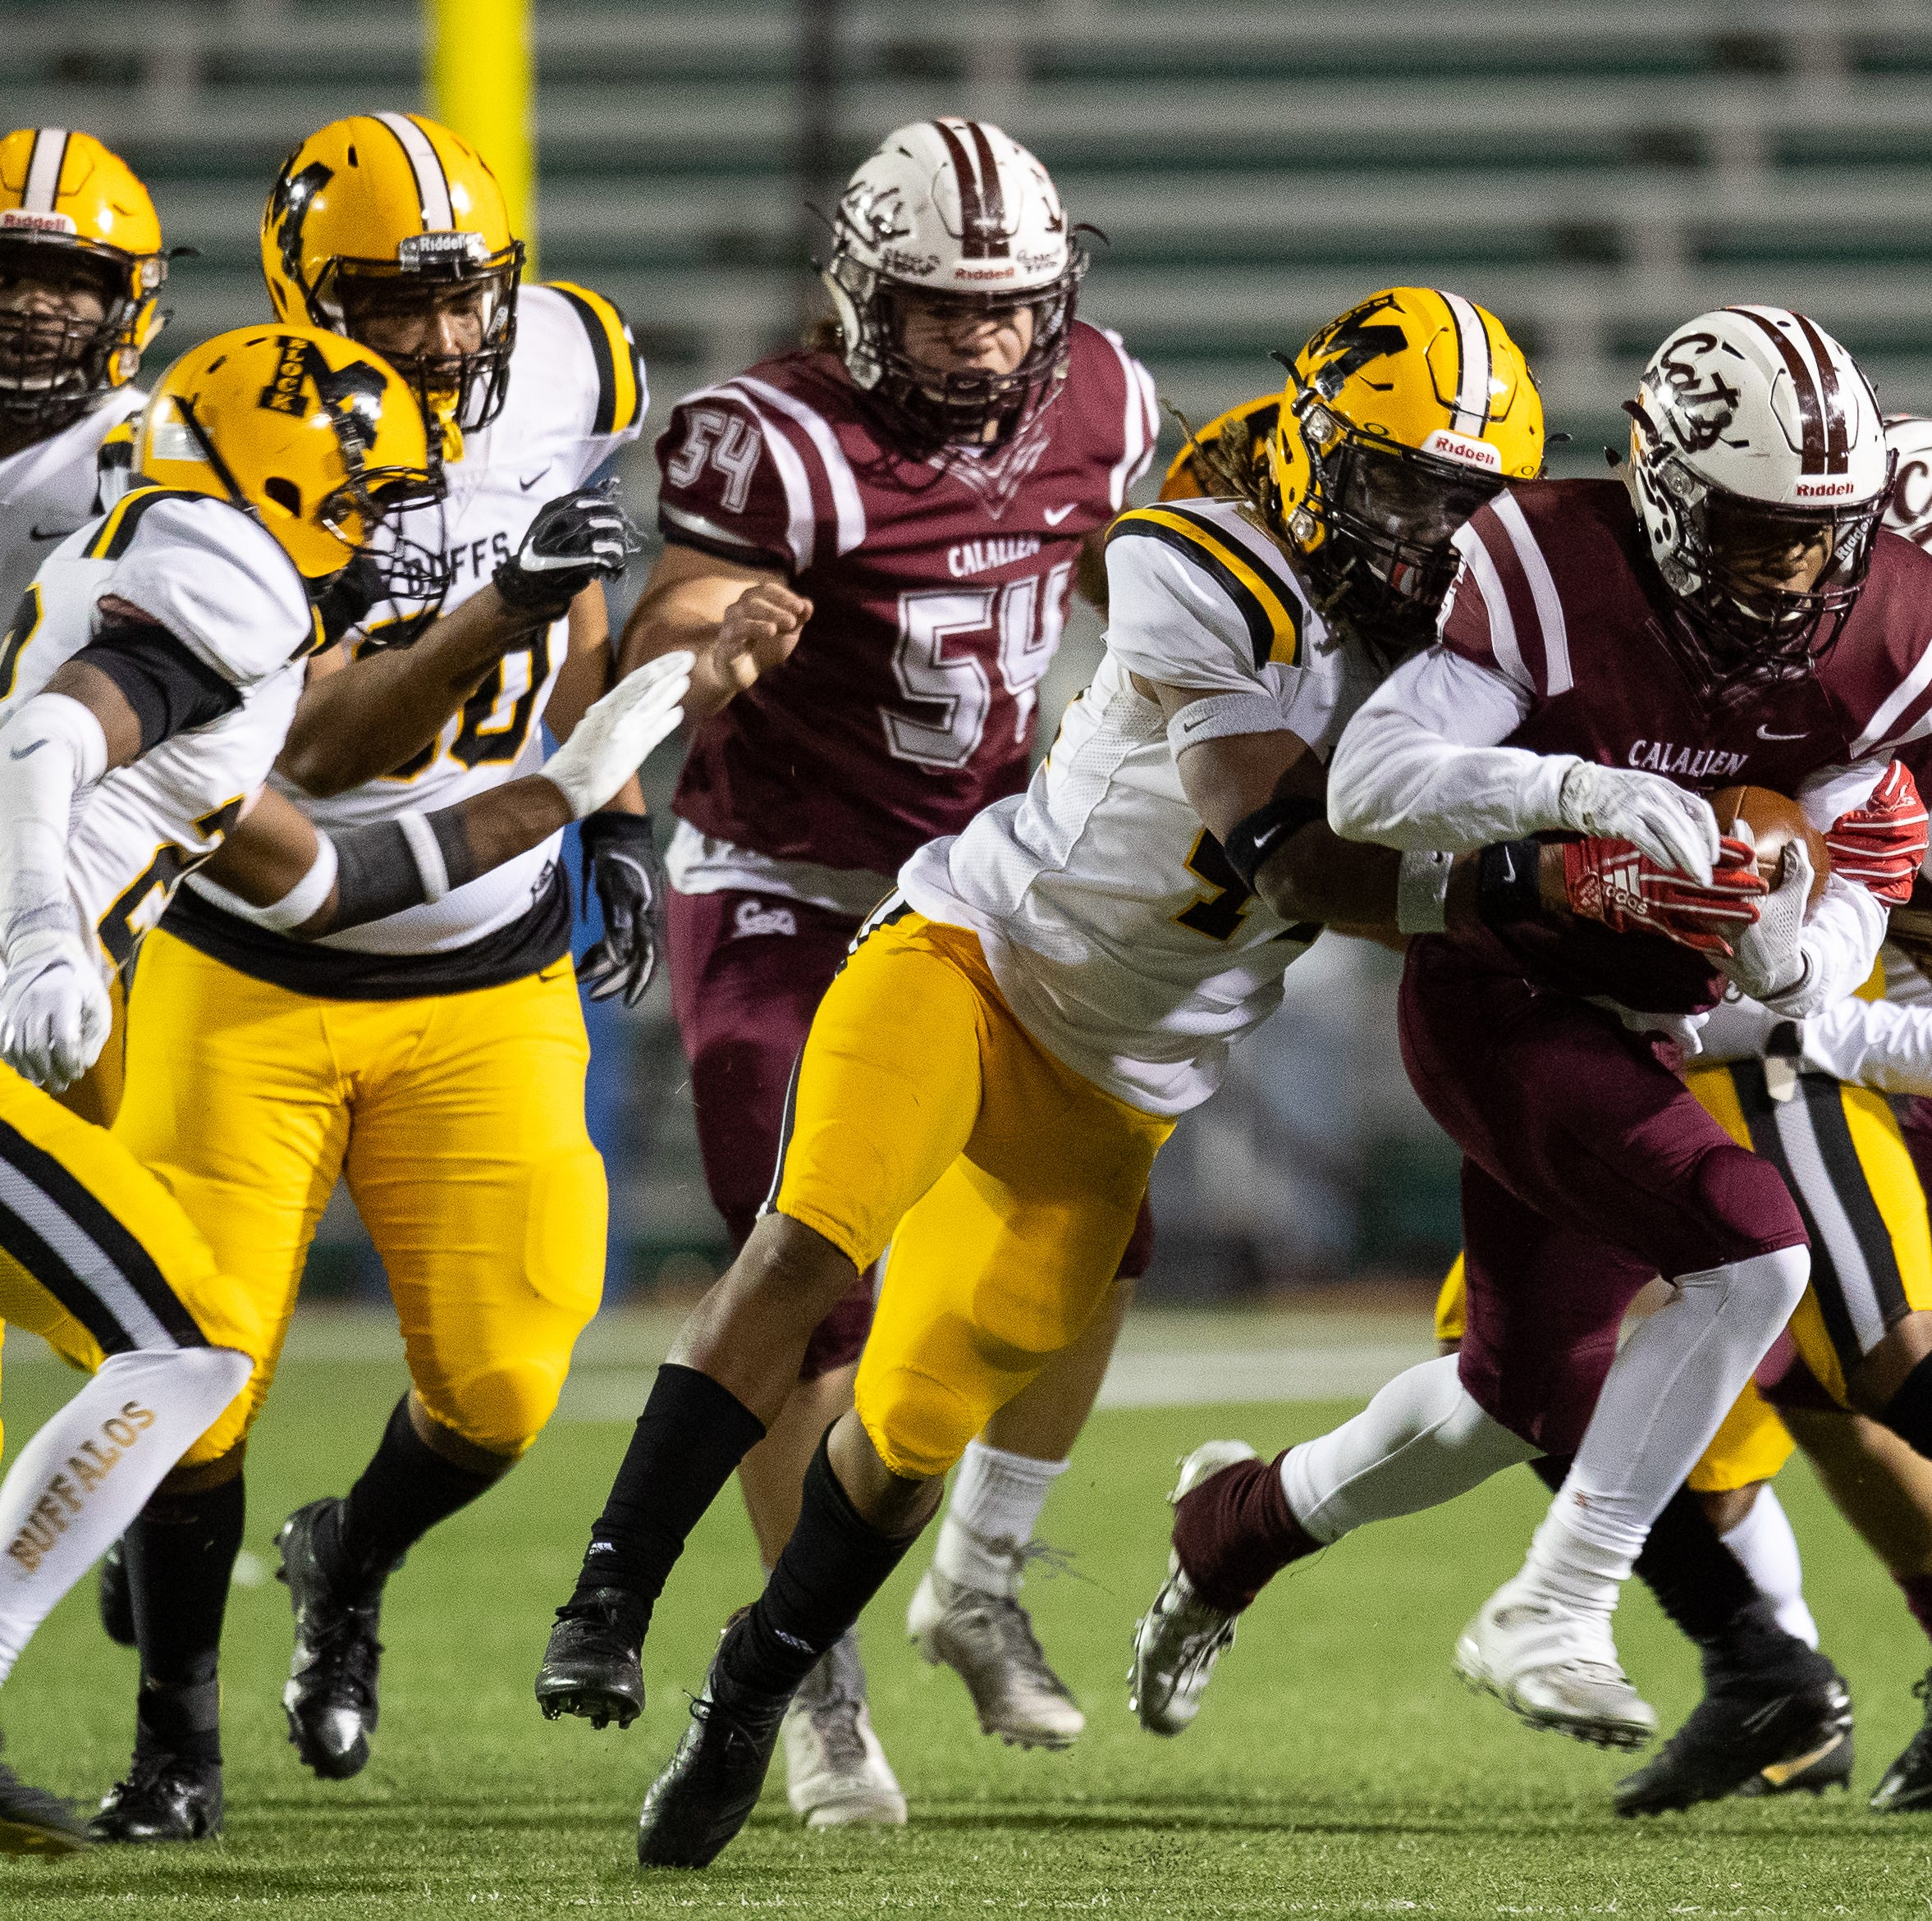 Fort Bend Marshall rallies in second half to edge Calallen in state semifinals